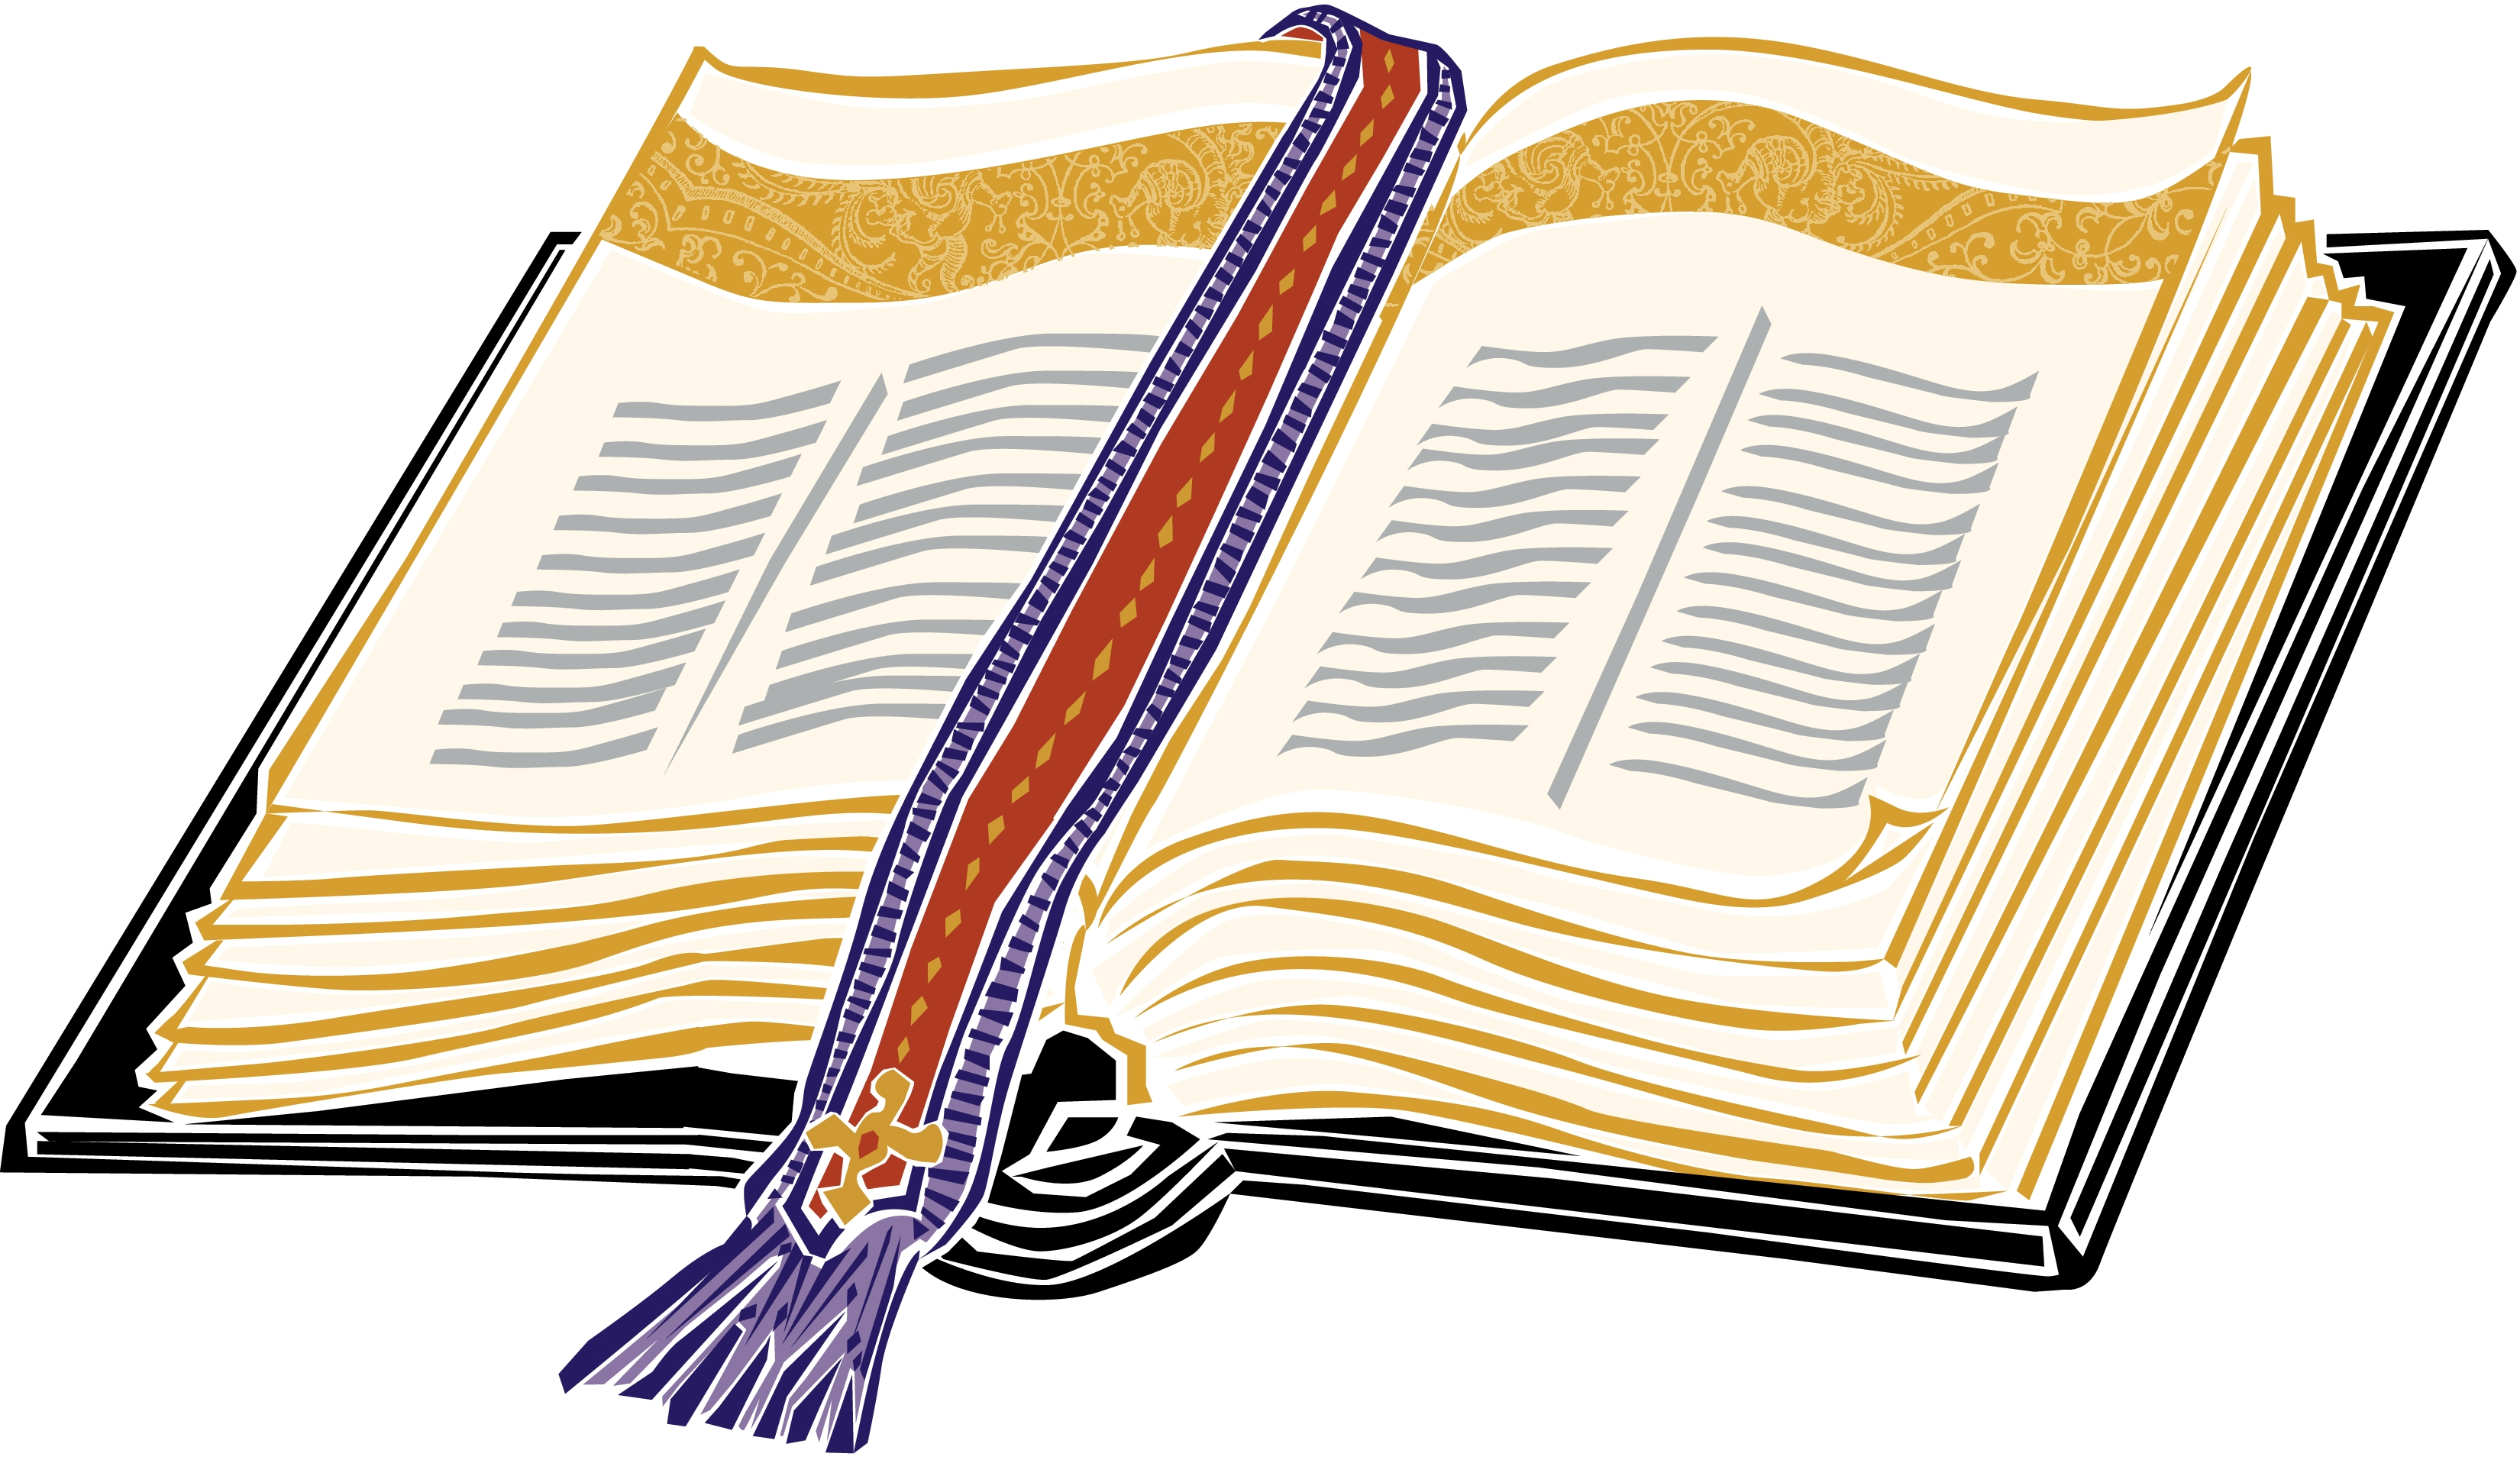 Open Bible Clipart - Cliparts.co